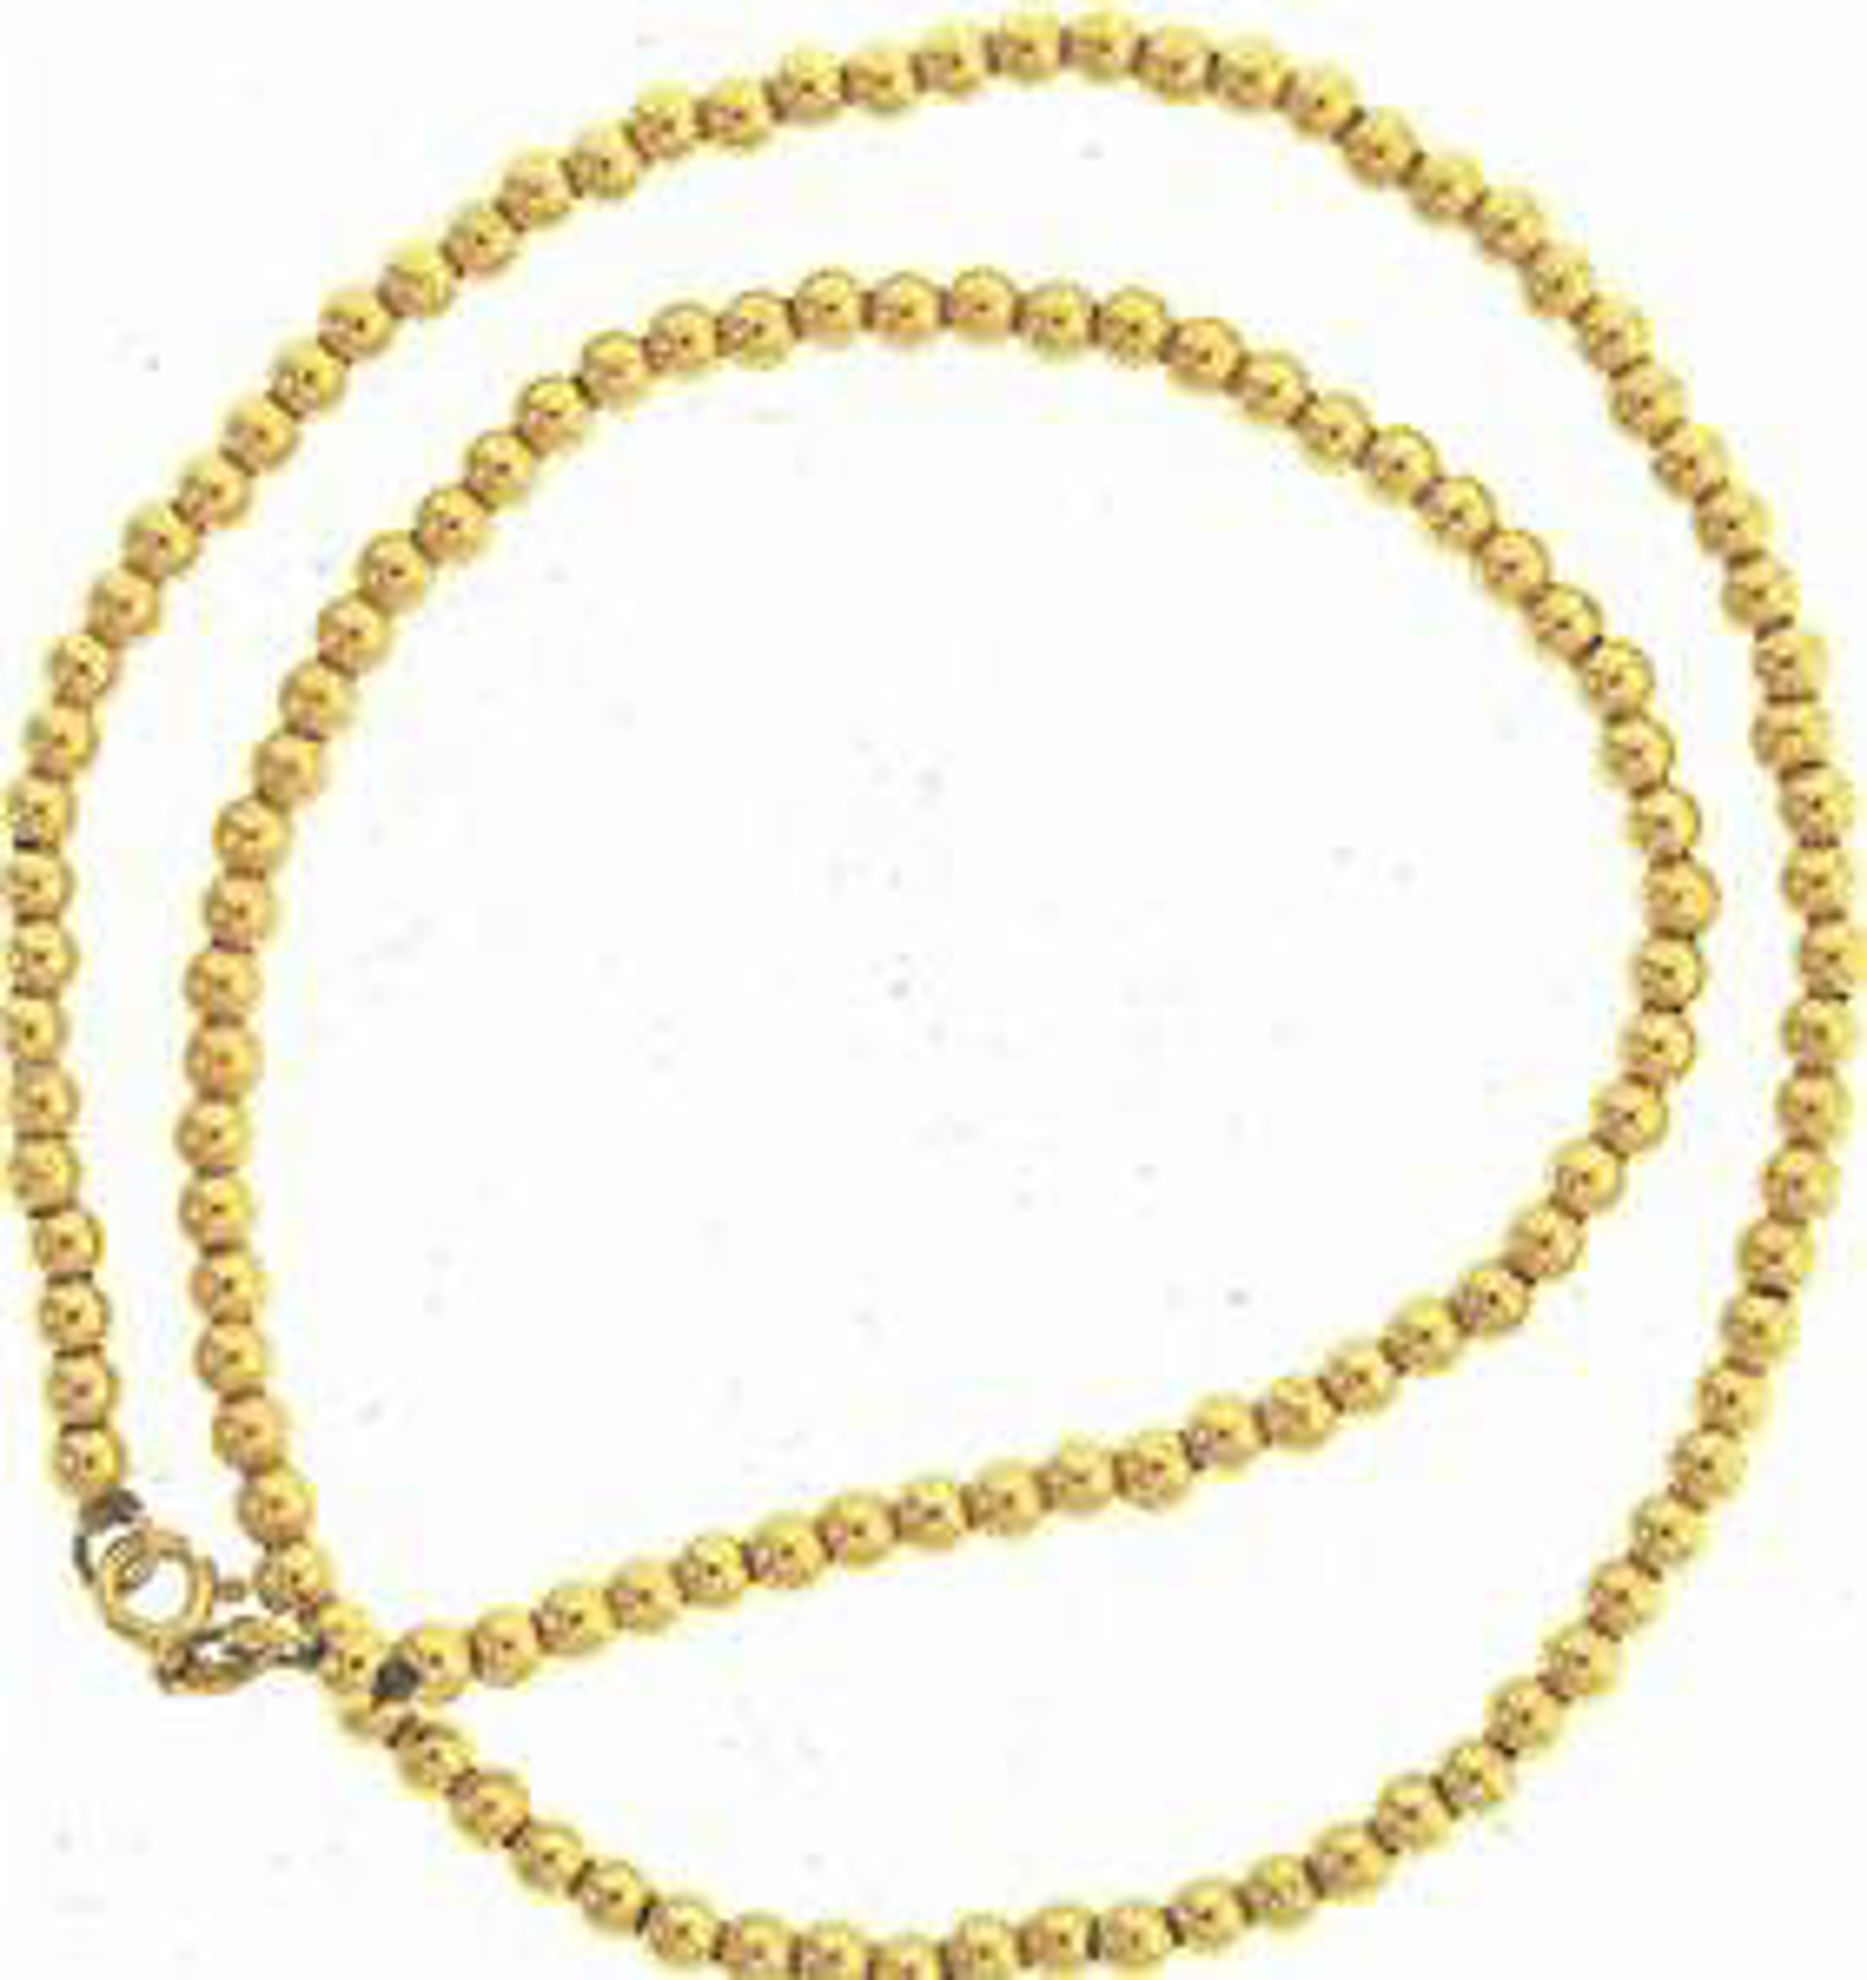 Picture of Chains 14kt-1.9 DWT, 3.0 Grams